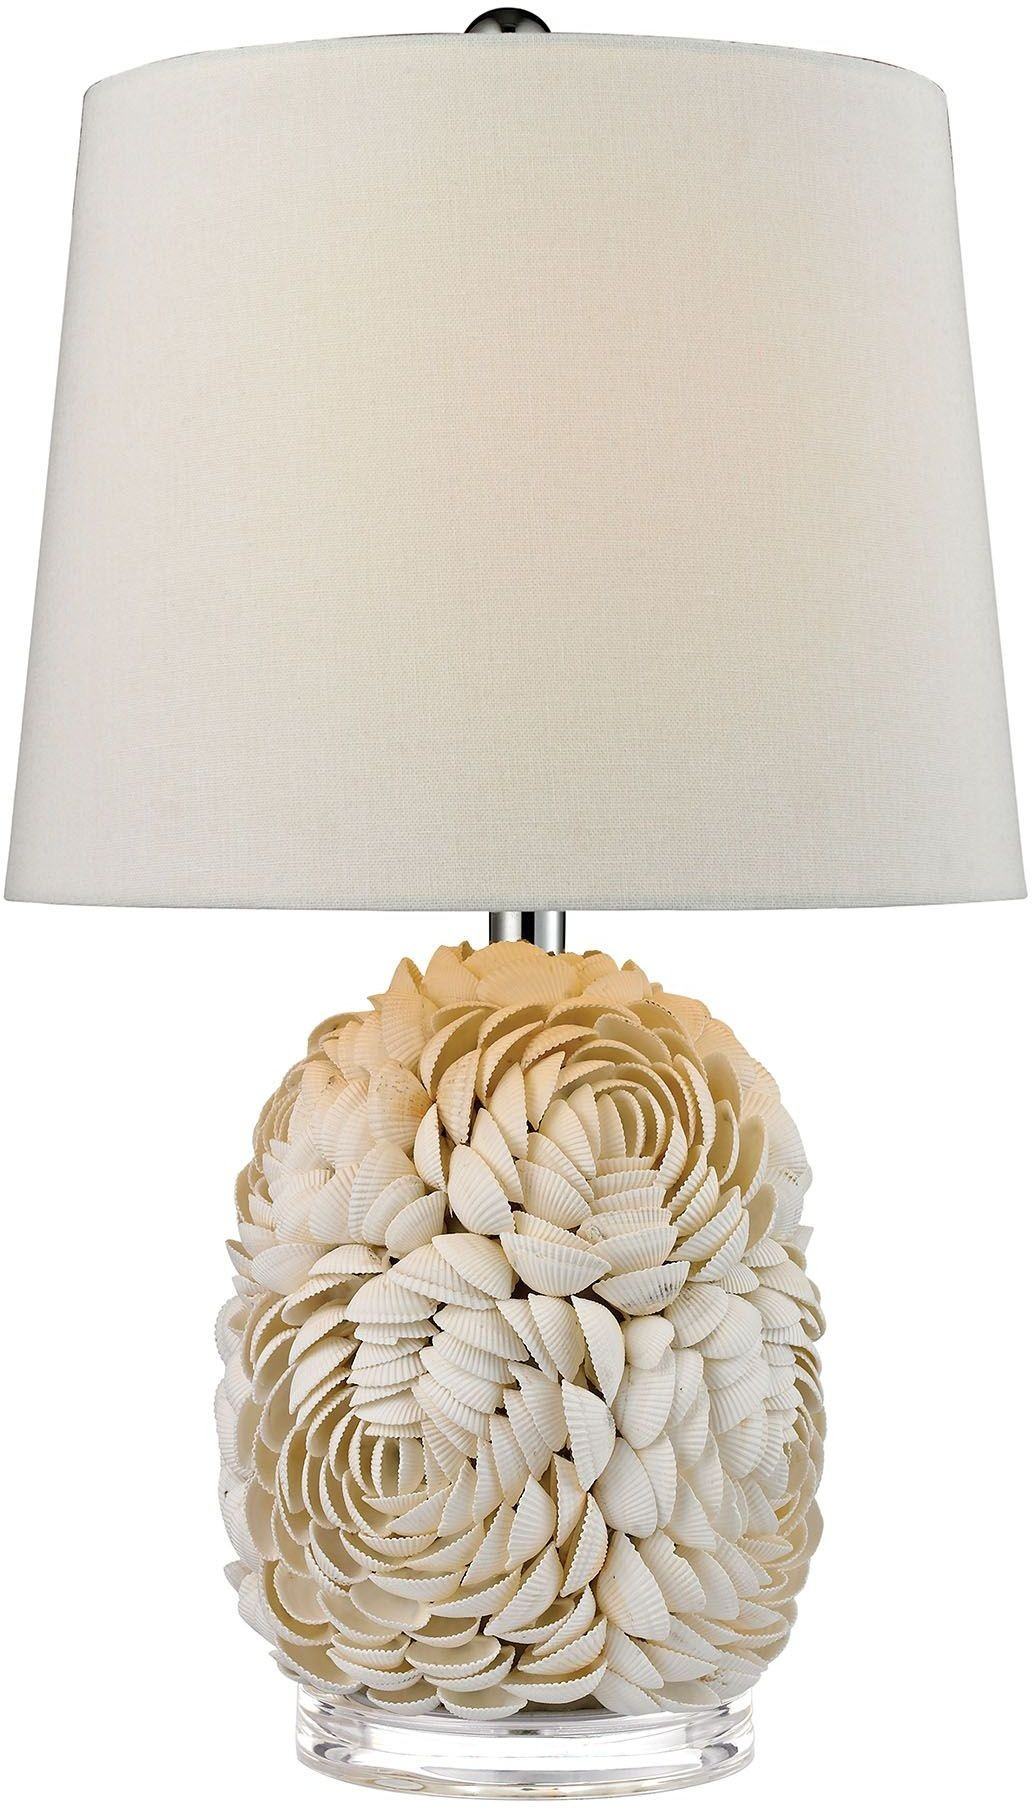 natural shell off white linen shade table lamp d2655 dimond lighting. Black Bedroom Furniture Sets. Home Design Ideas